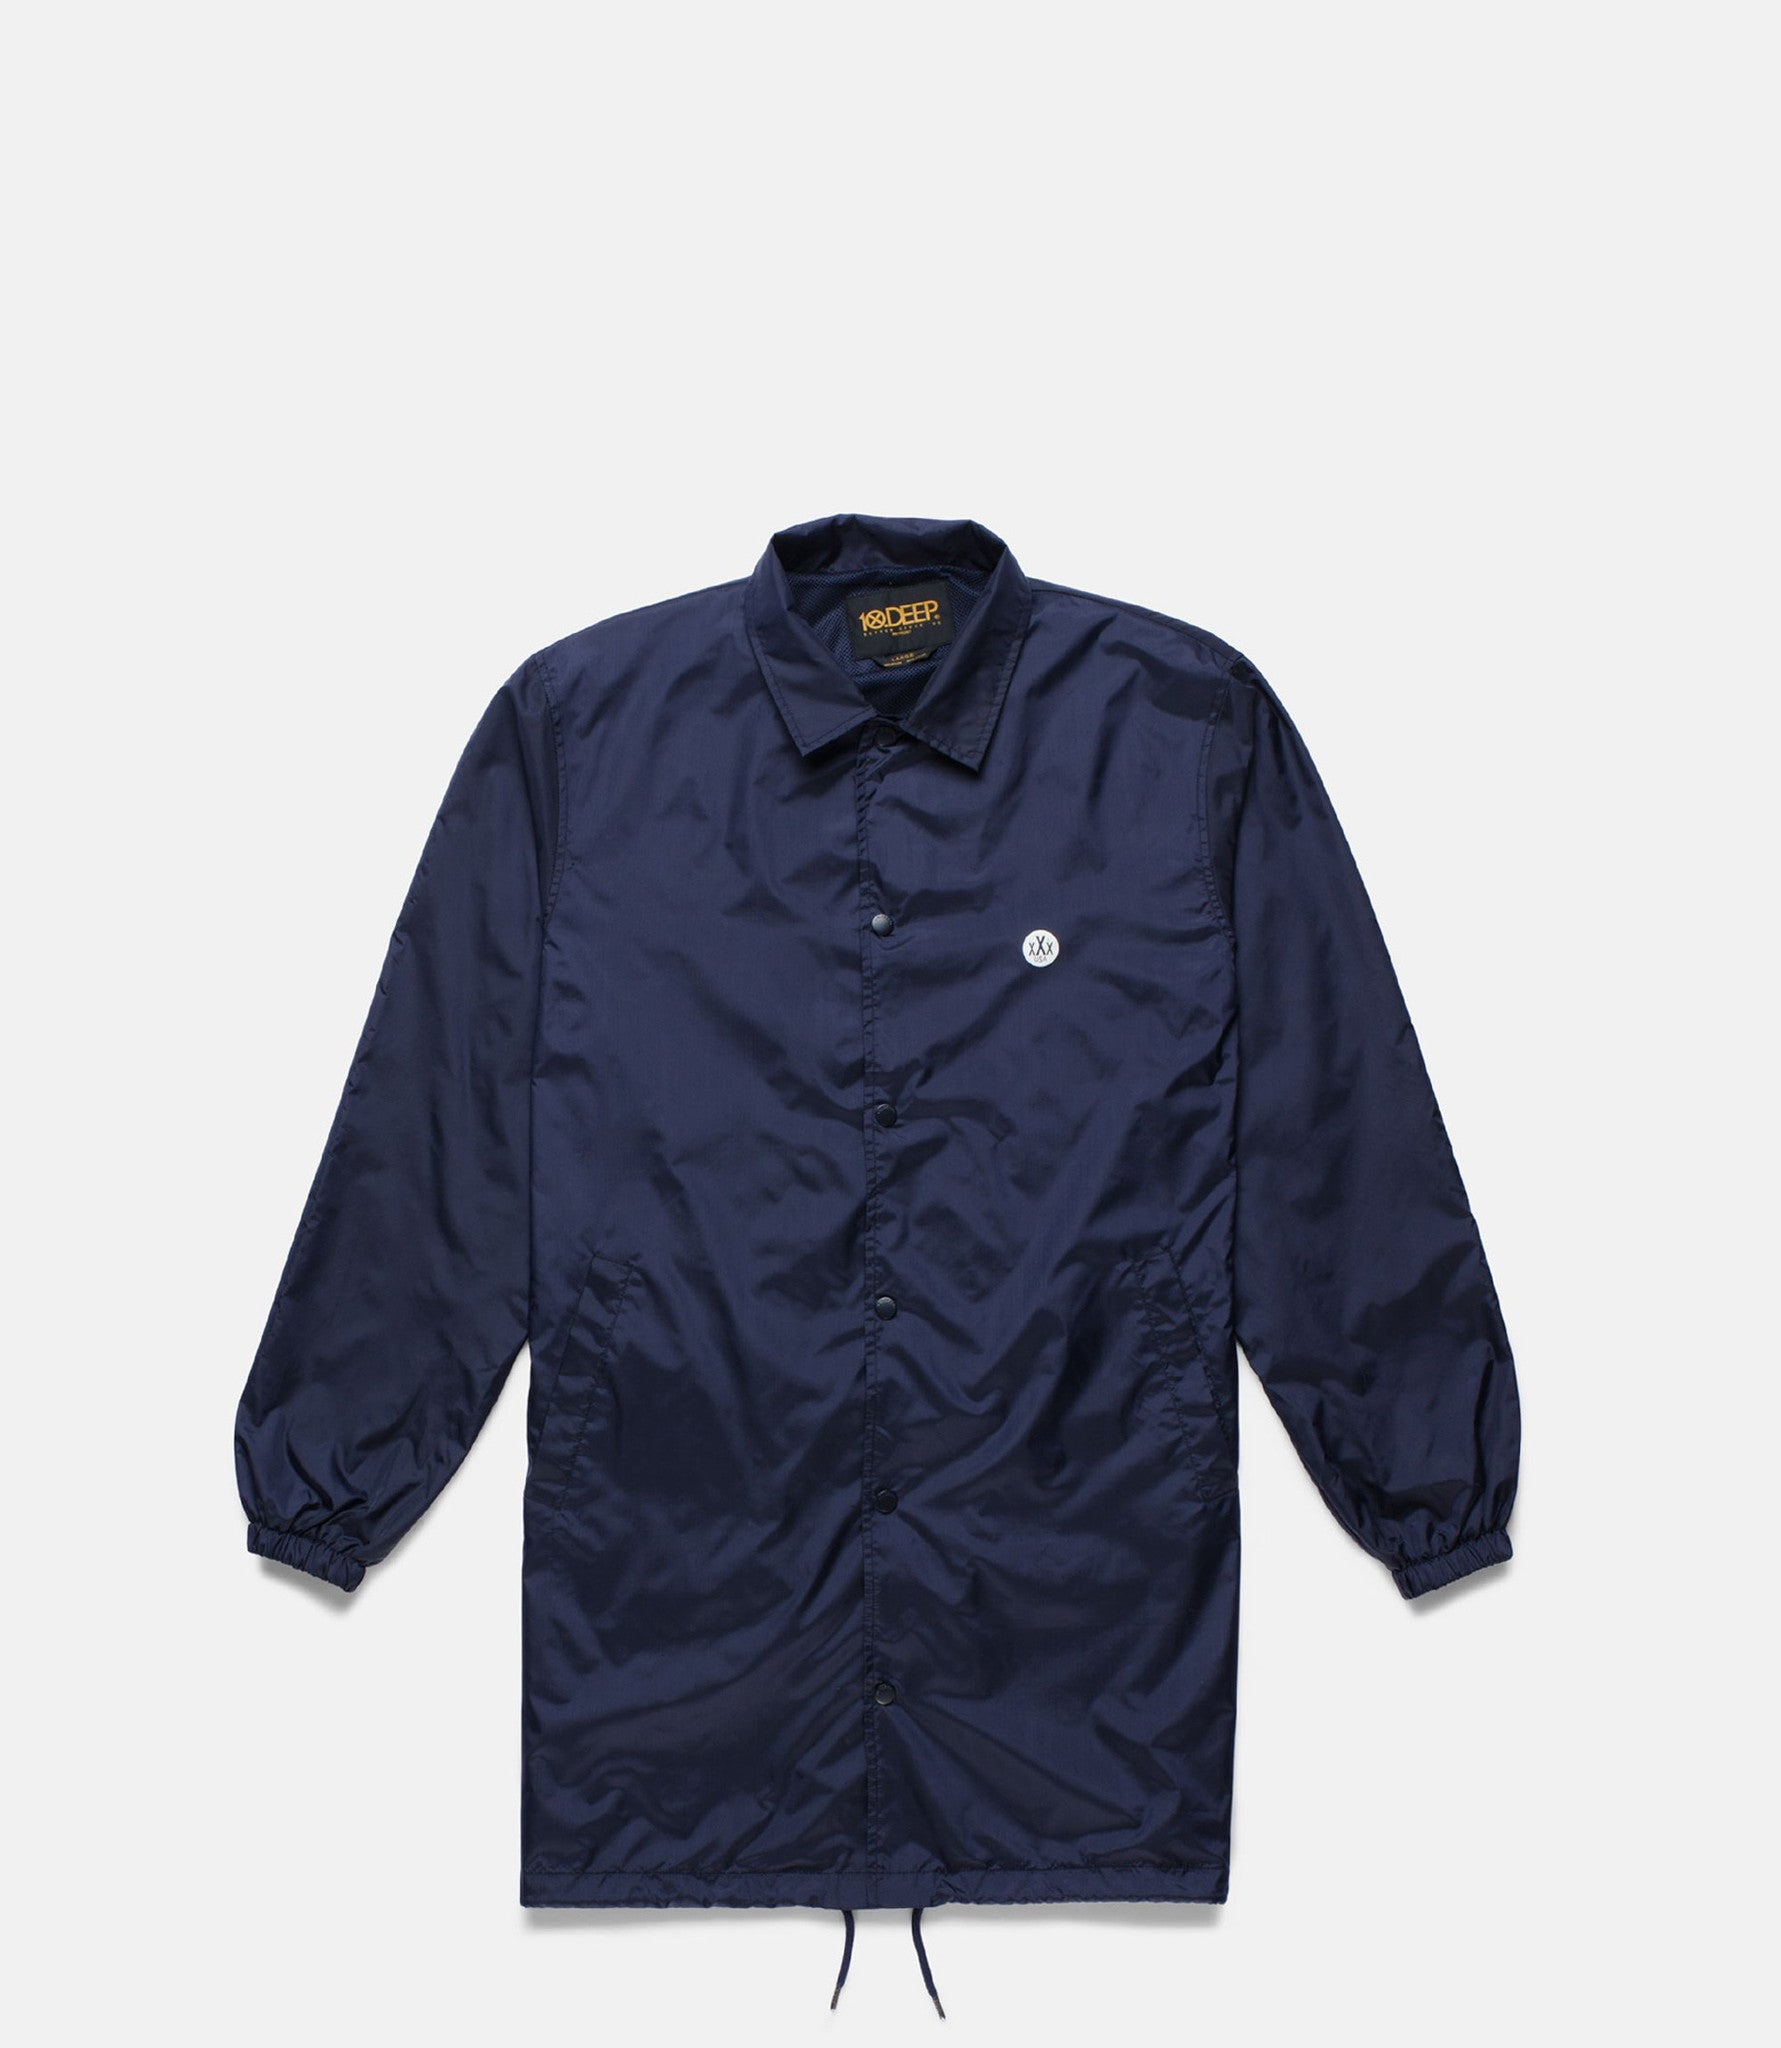 10Deep - Sound & Fury Coach's Trench, Navy - The Giant Peach - 2